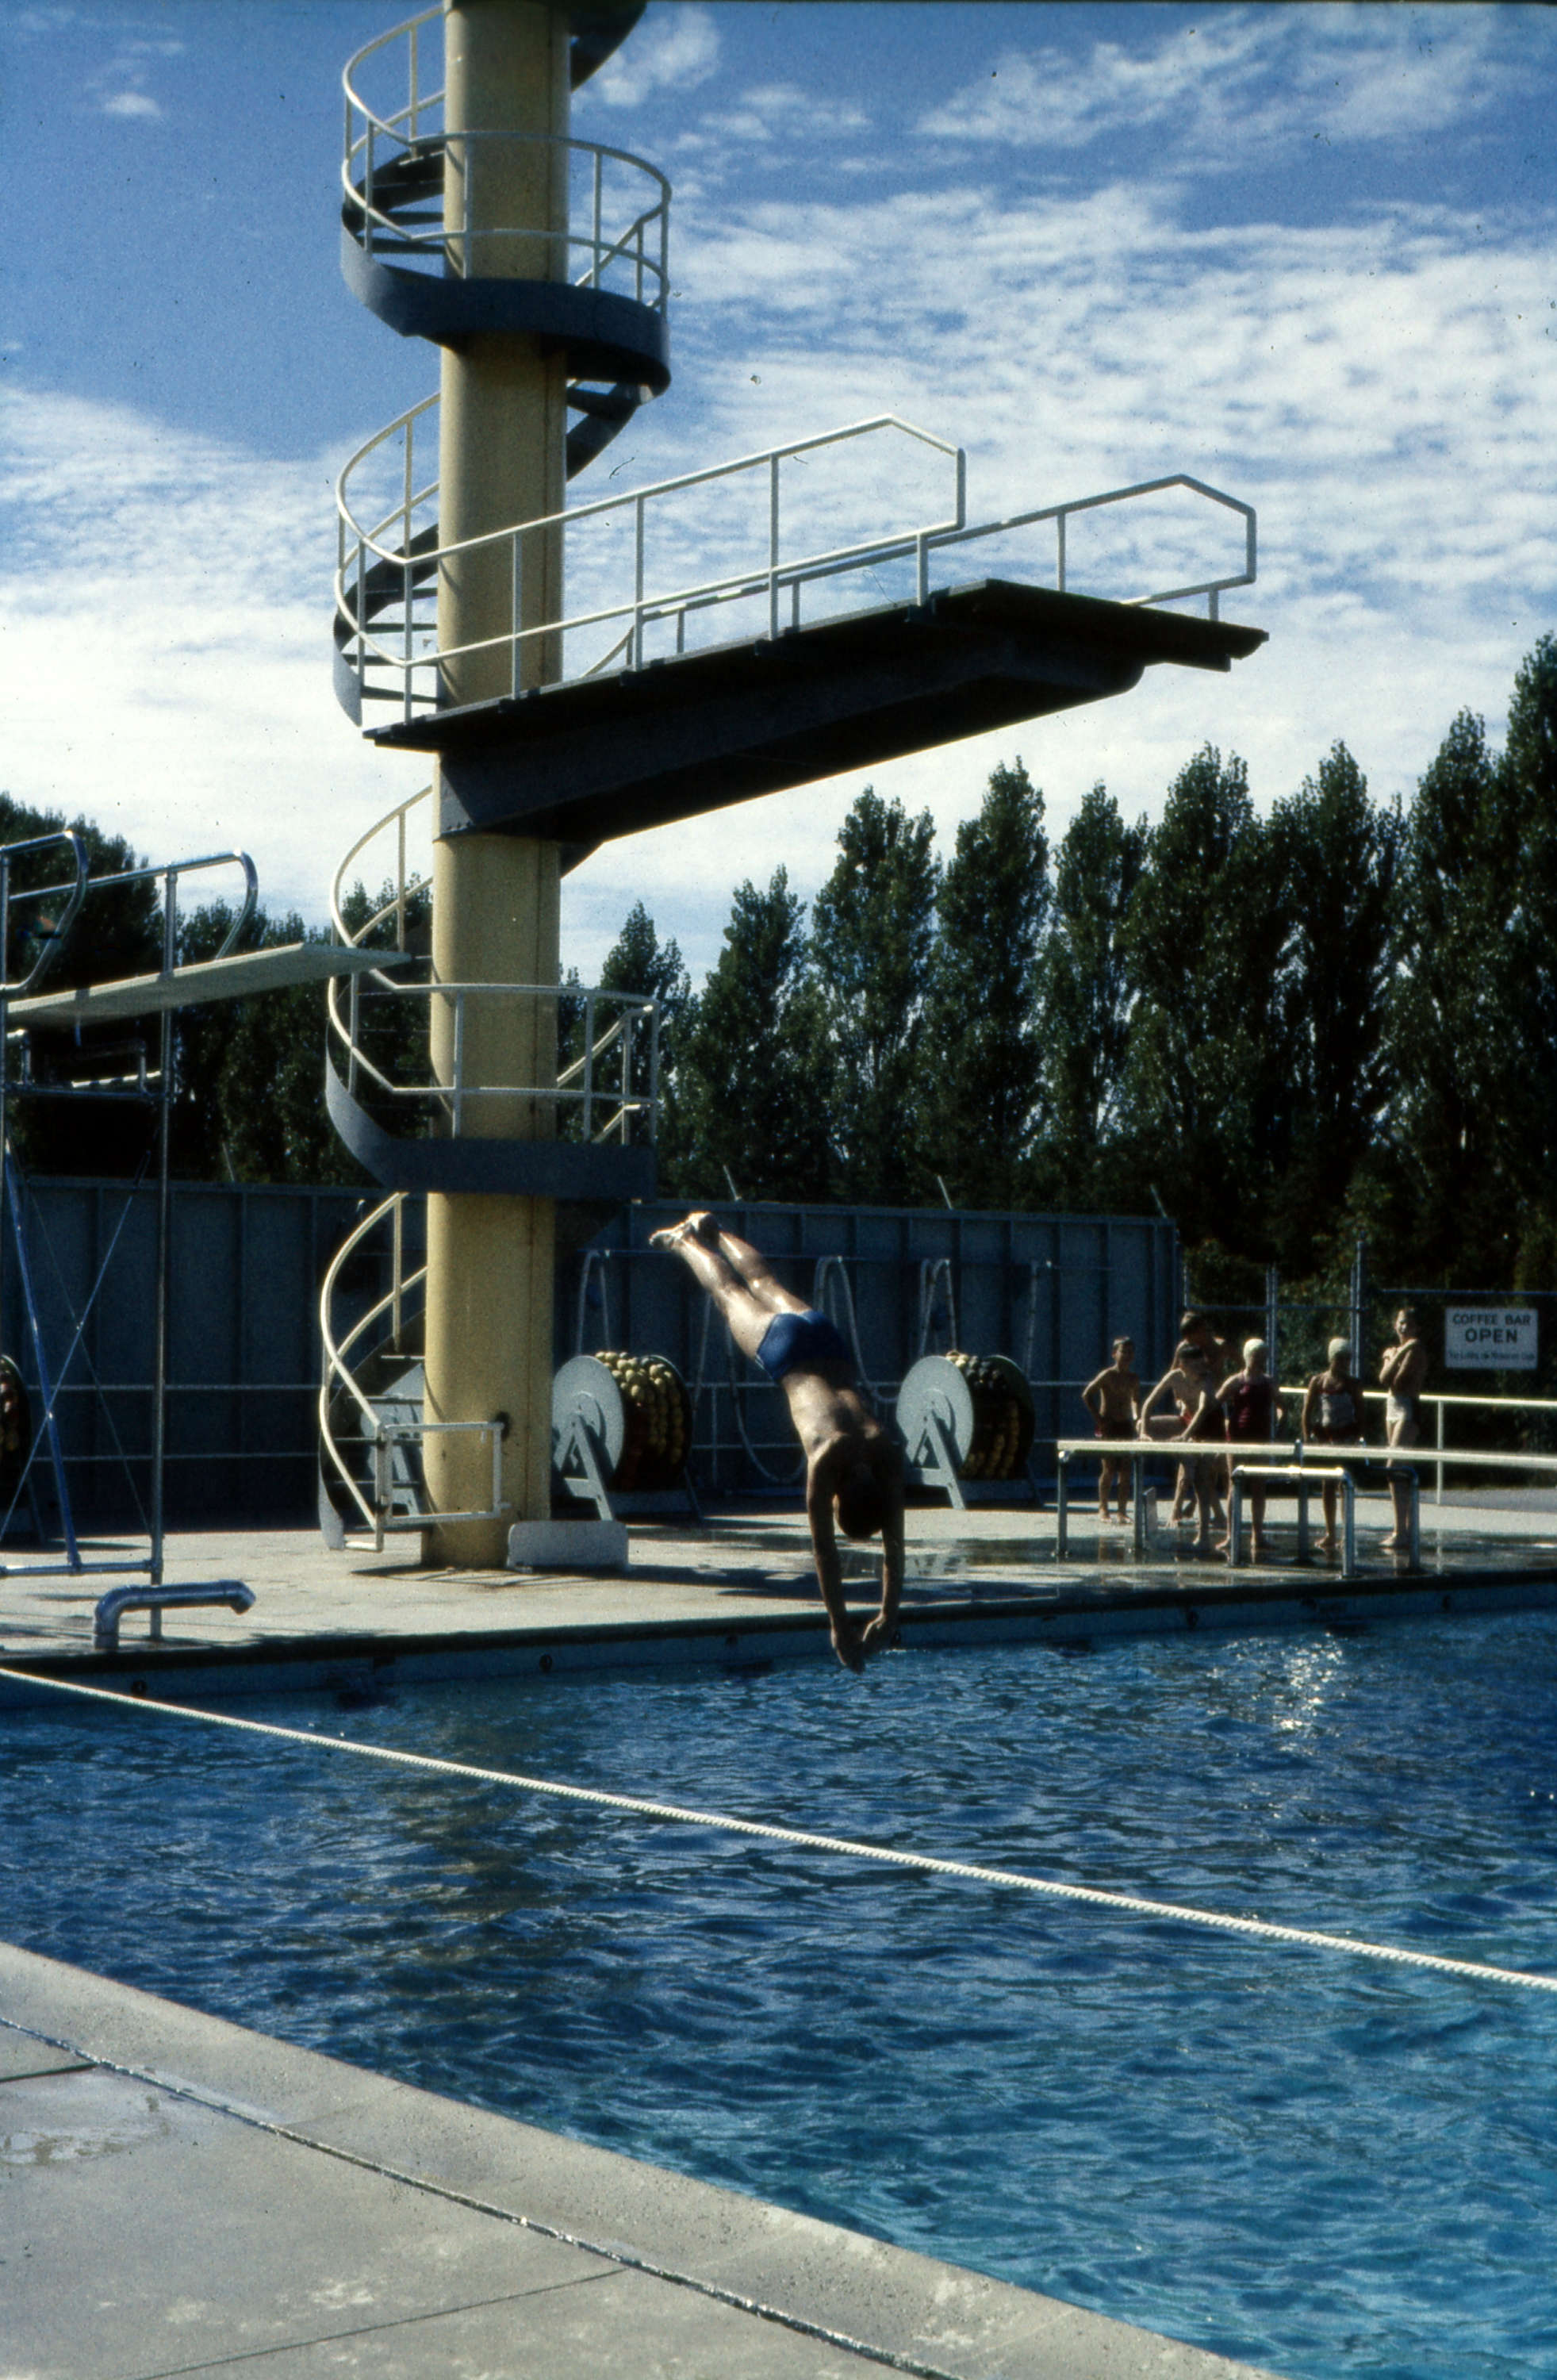 Views Of Empire Pool At Ubc 6081 University Boulevard City Of Vancouver Archives